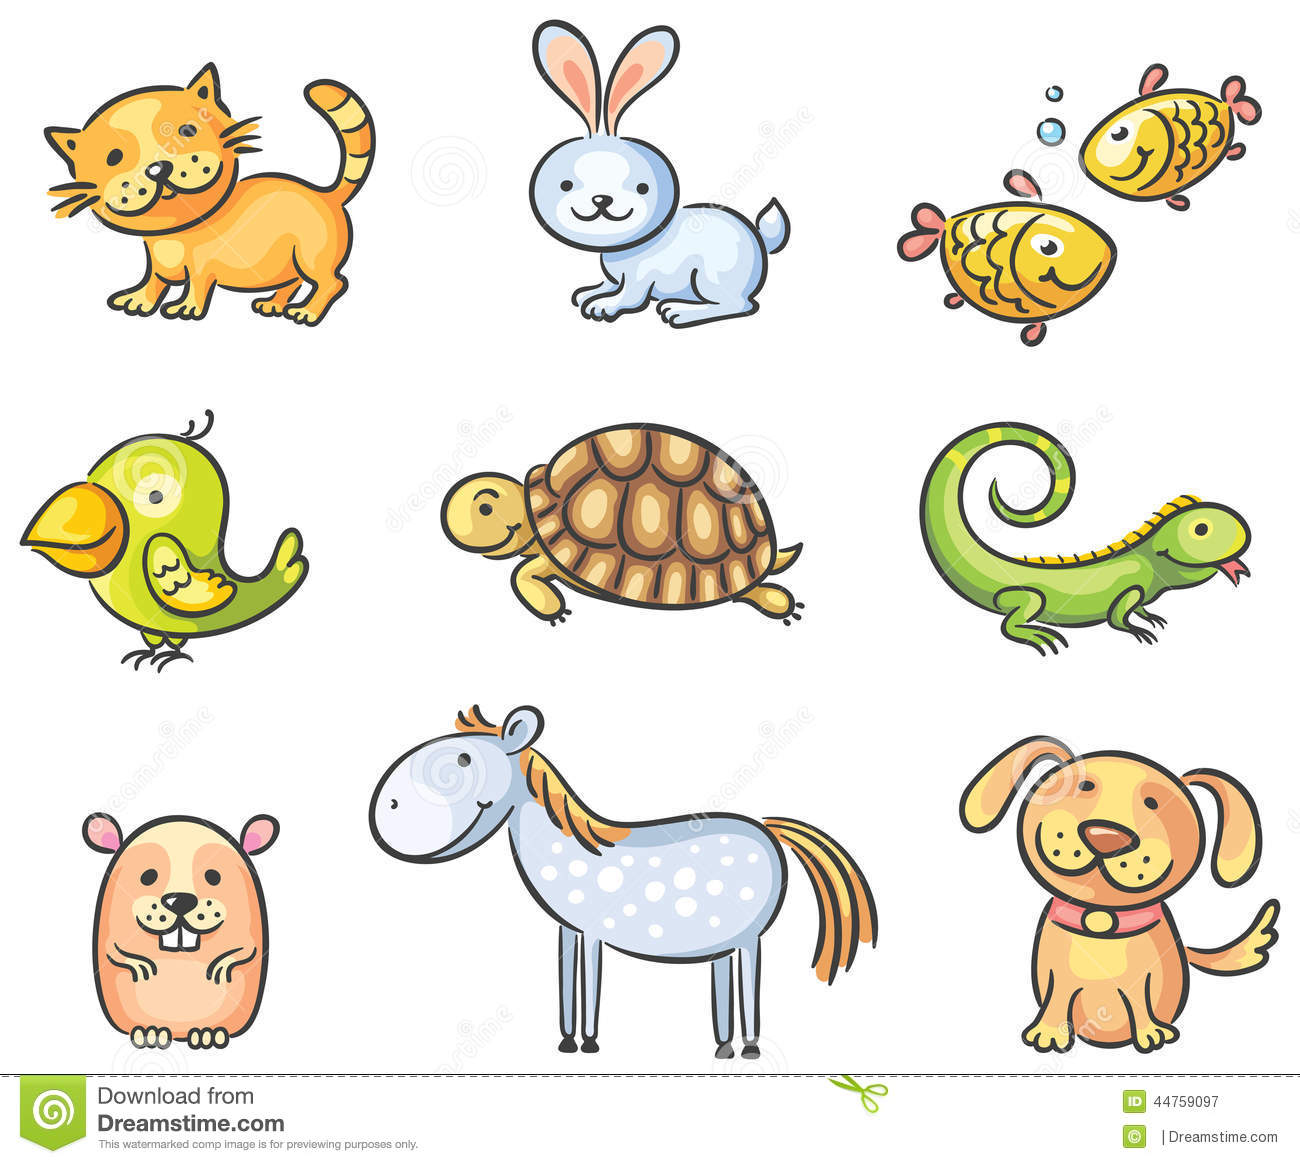 Pet Cartoon Cliparts on Worksheets About Pets